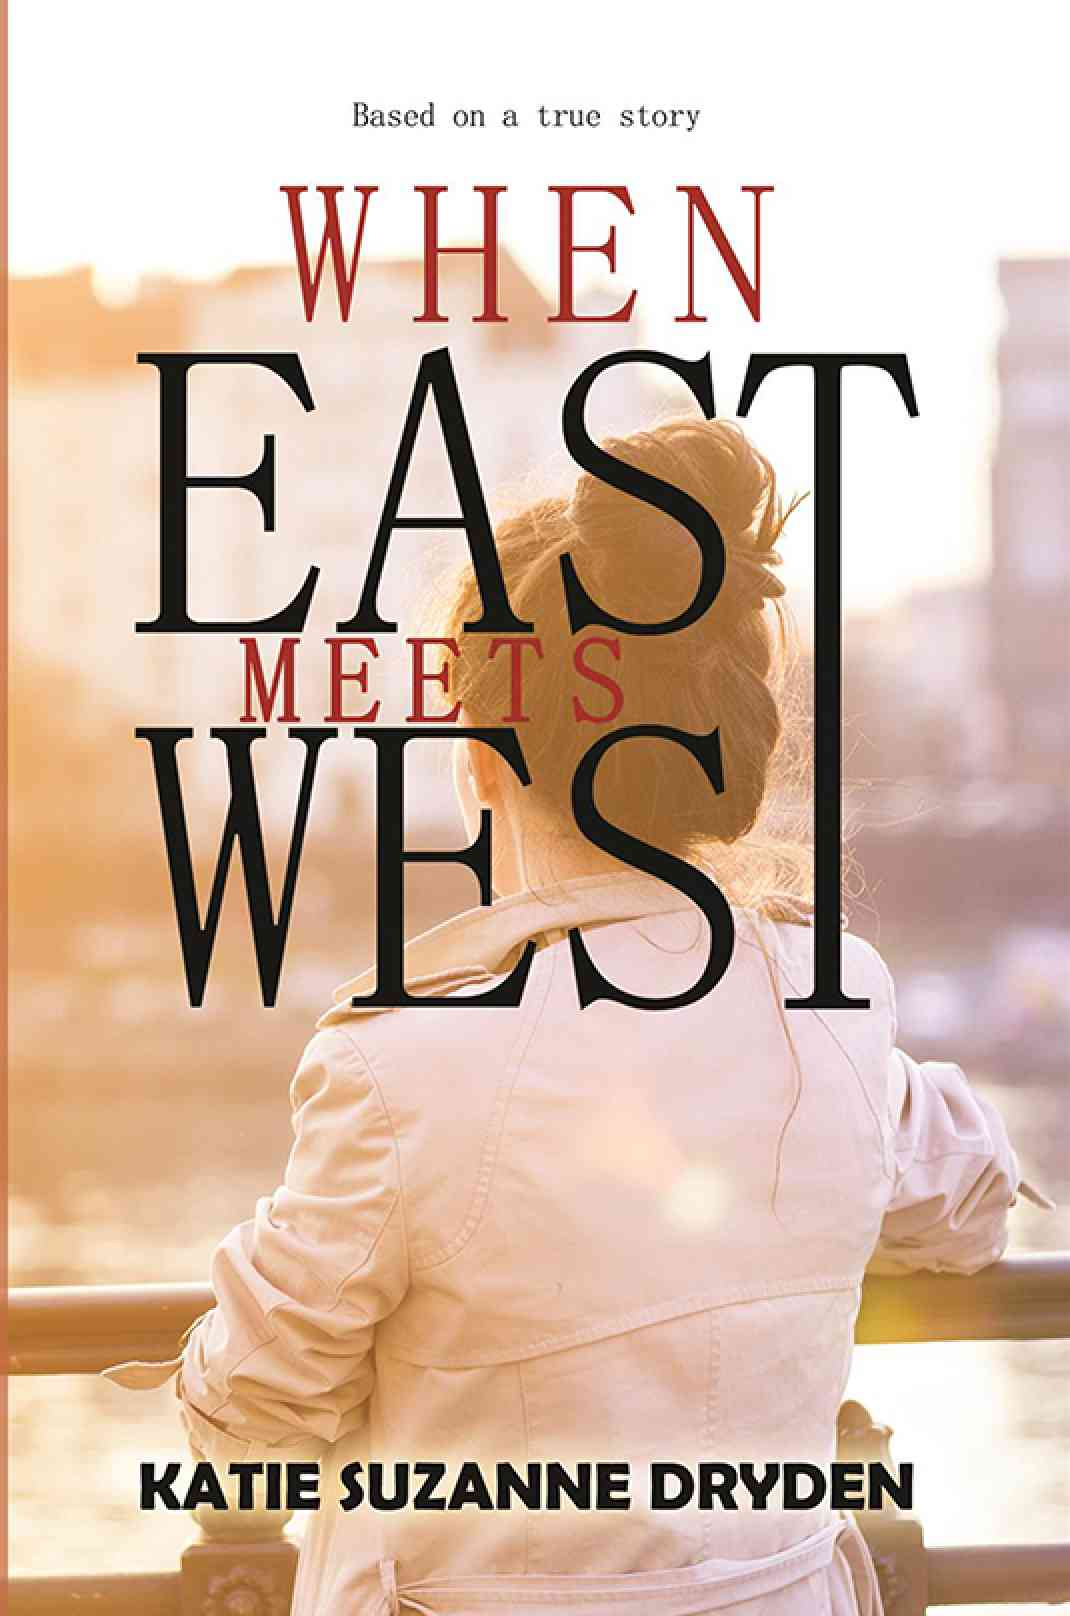 stores like east meets west